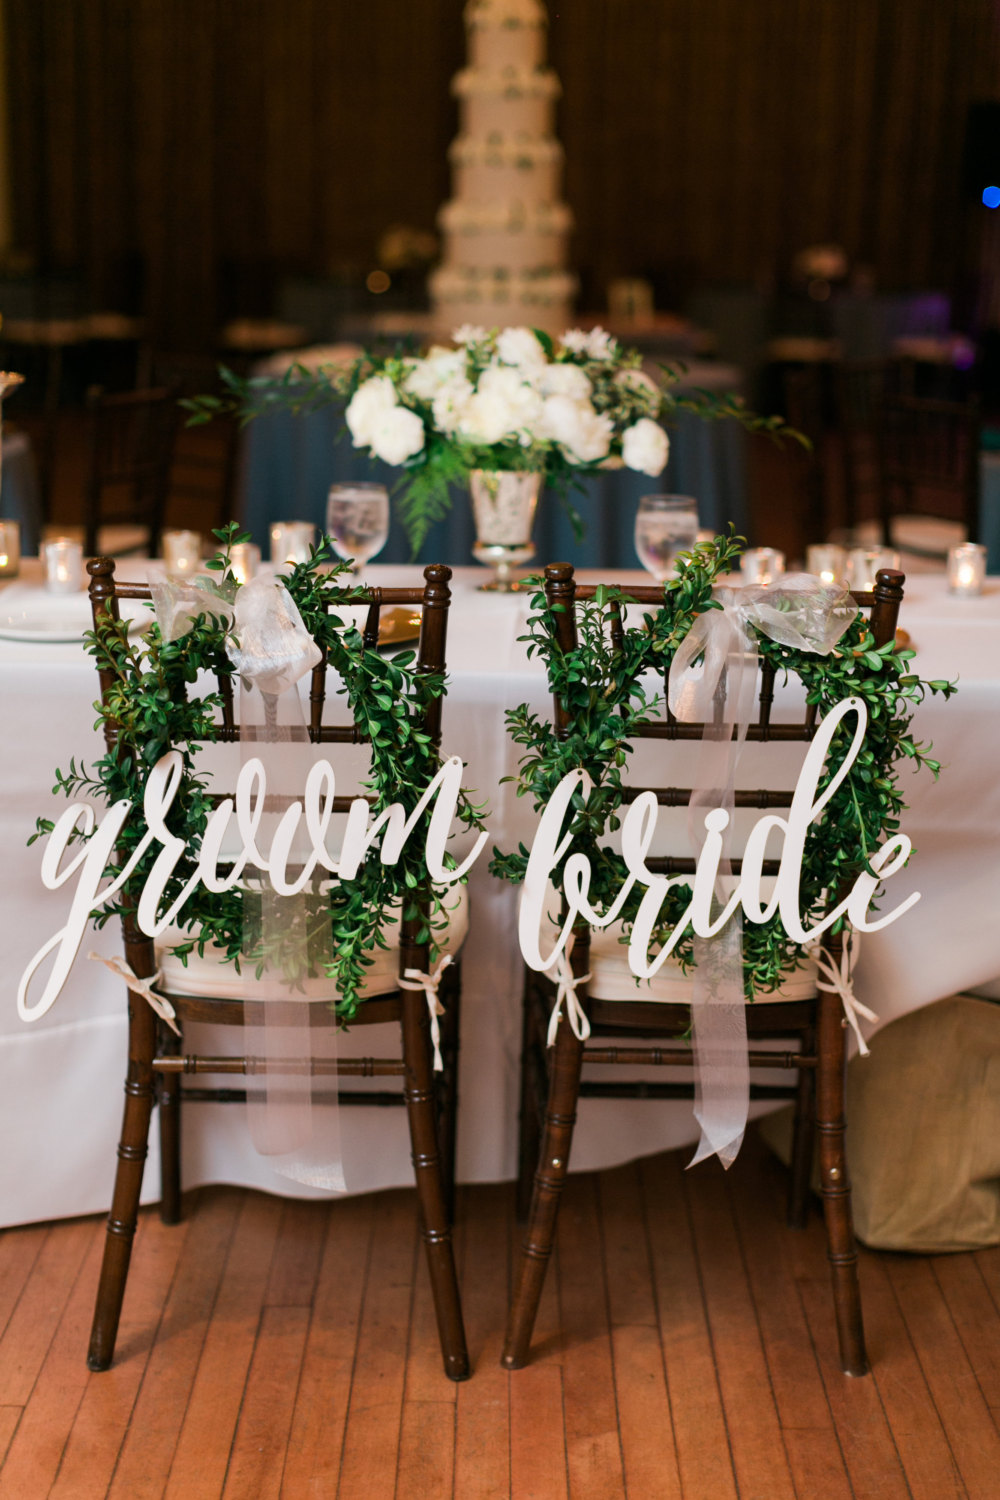 large script chair sign | via bride and groom chair signs https://emmalinebride.com/decor/bride-and-groom-chairs/